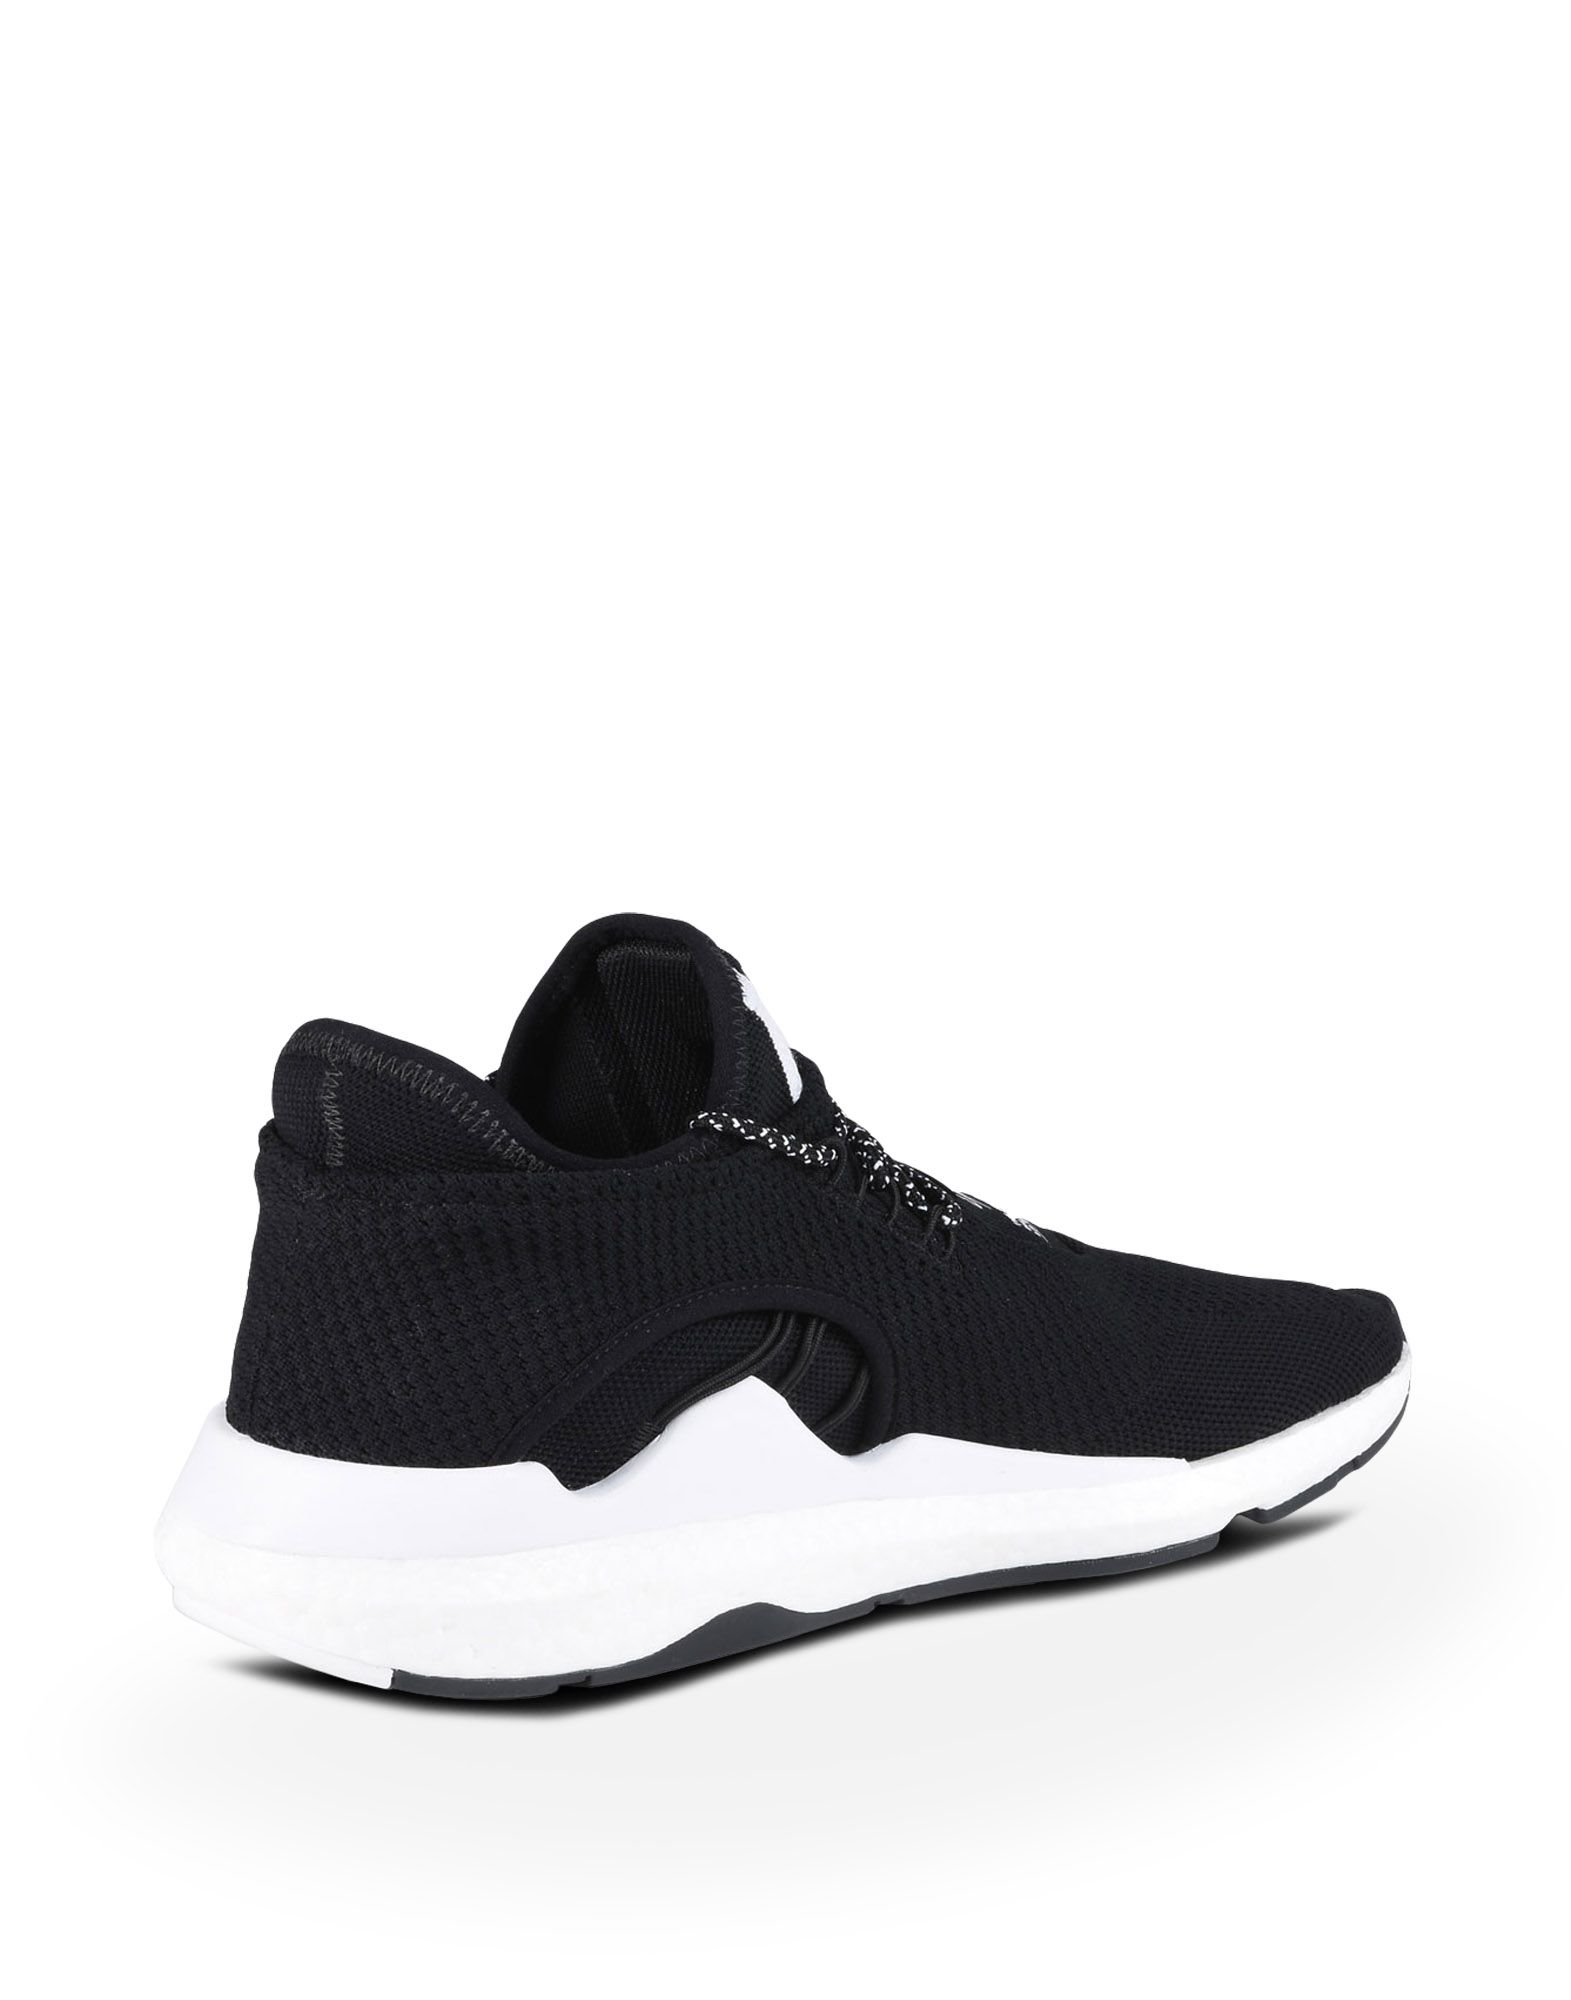 Y-3 SAIKOU Shoes unisex Y-3 adidas